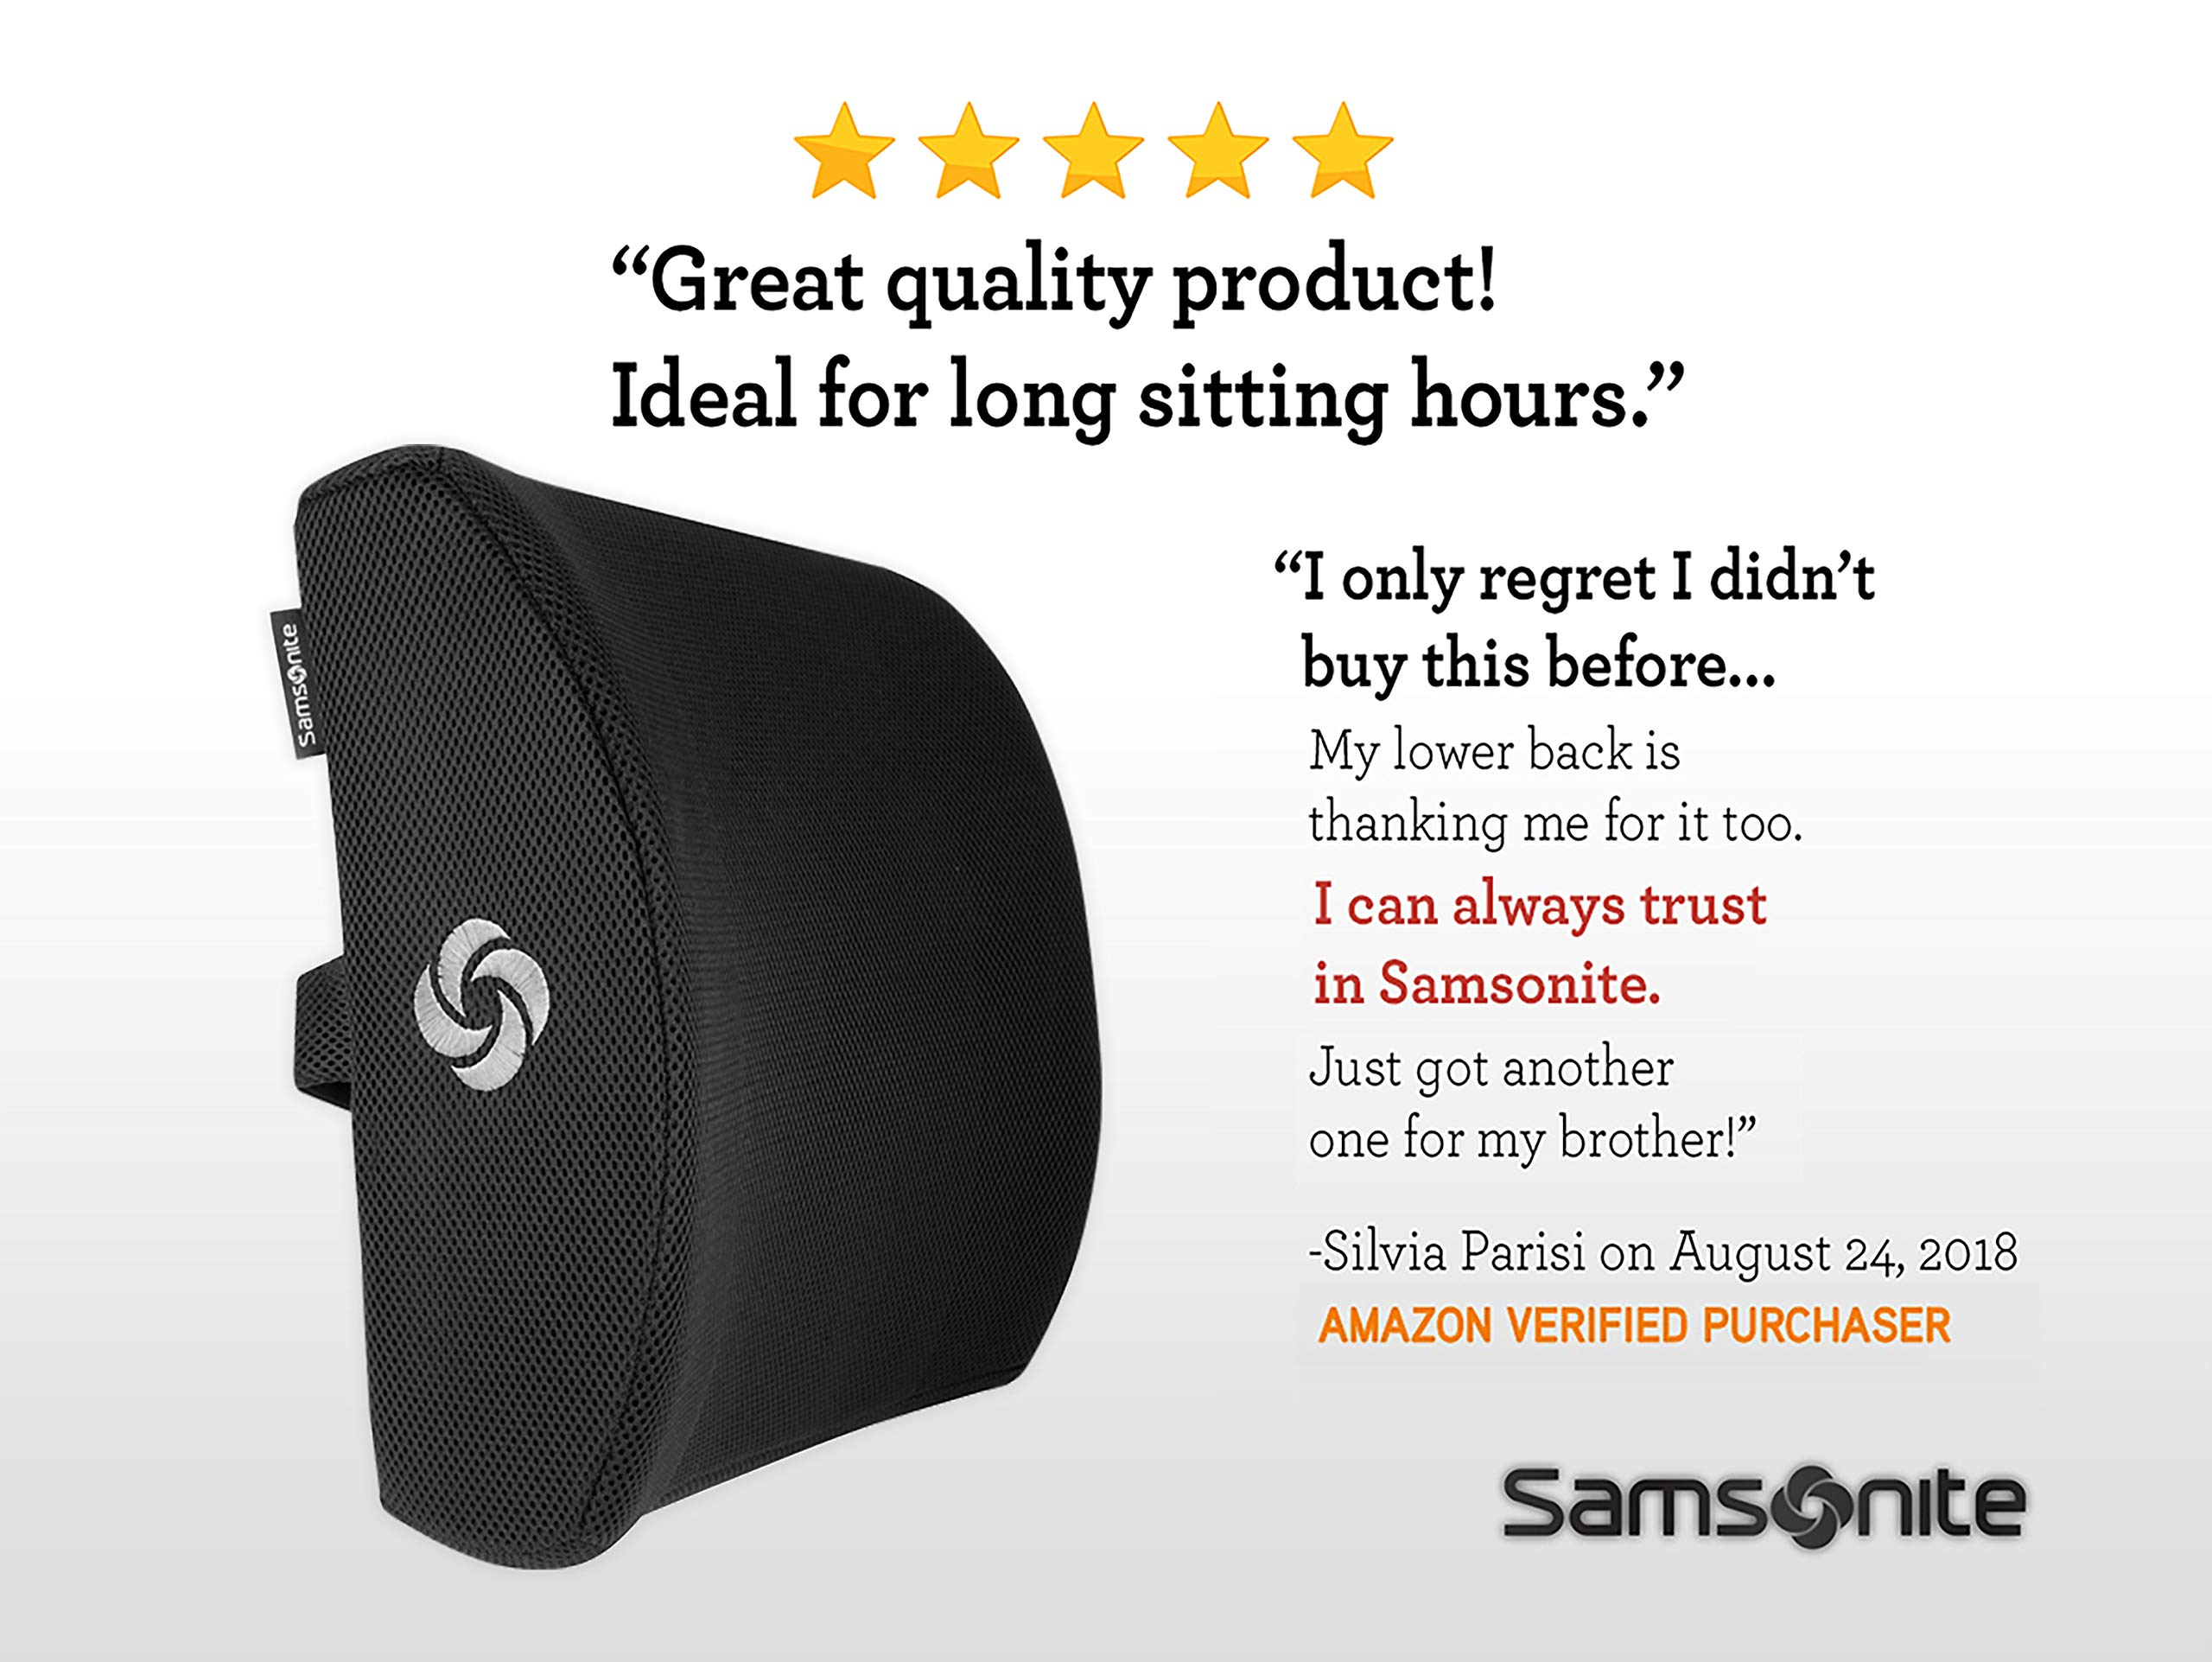 Samsonite SA5243 - Ergonomic Lumbar Support Pillow - Helps Relieve Lower Back Pain - 100% Pure Memory Foam - Improves Posture - Fits Most Seats - Breathable Mesh - Washable Cover - Adjustable Strap by Samsonite (Image #7)